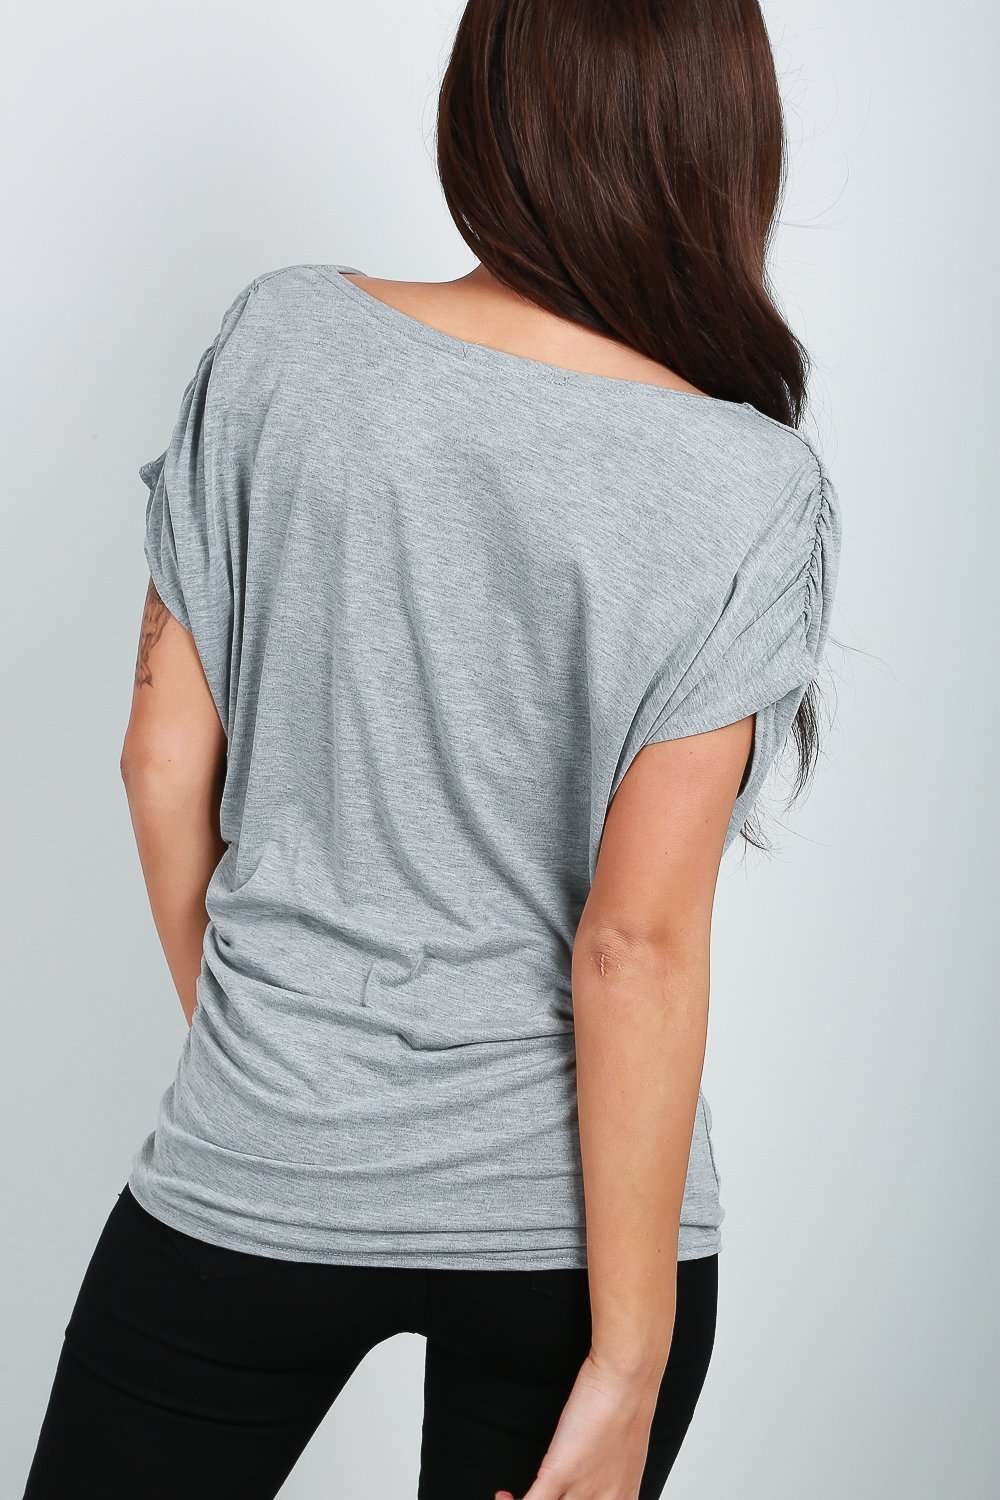 Harper Cowl Neck Gathered Jersey TShirt - bejealous-com